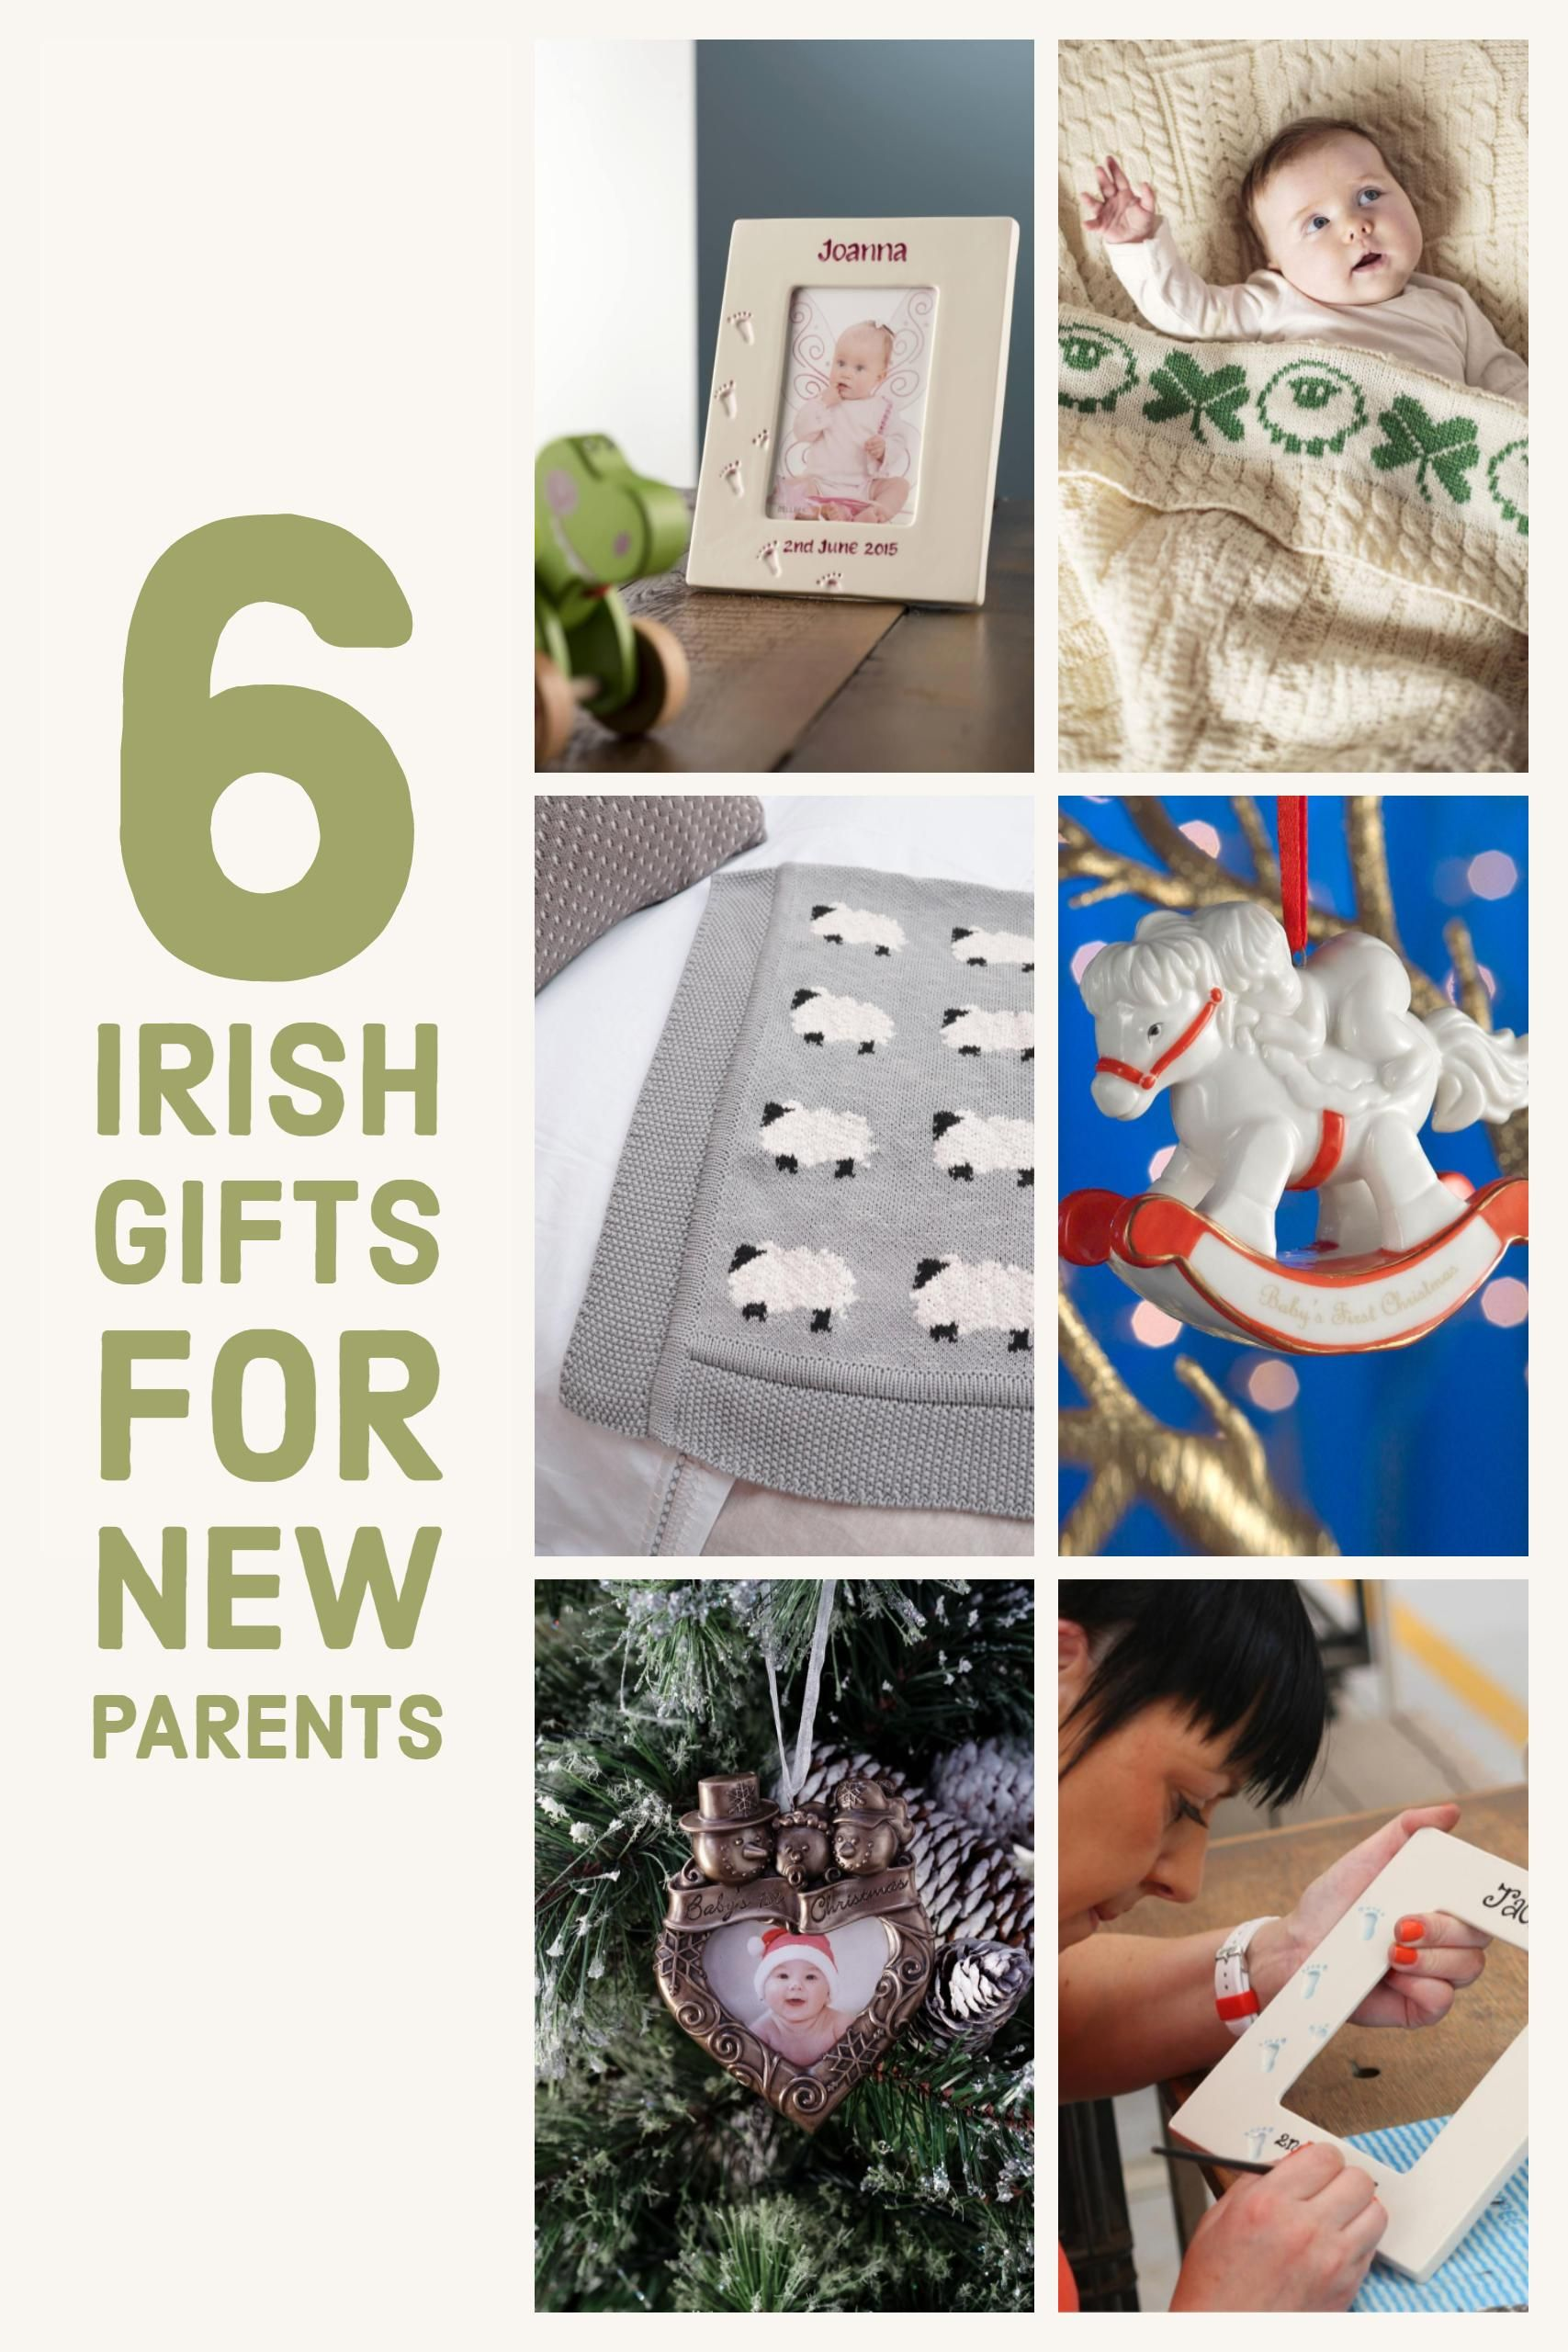 6 irish gifts for new parents gifts presents giftideas giftsforparents christmas christmasgifts christmas baby newborn